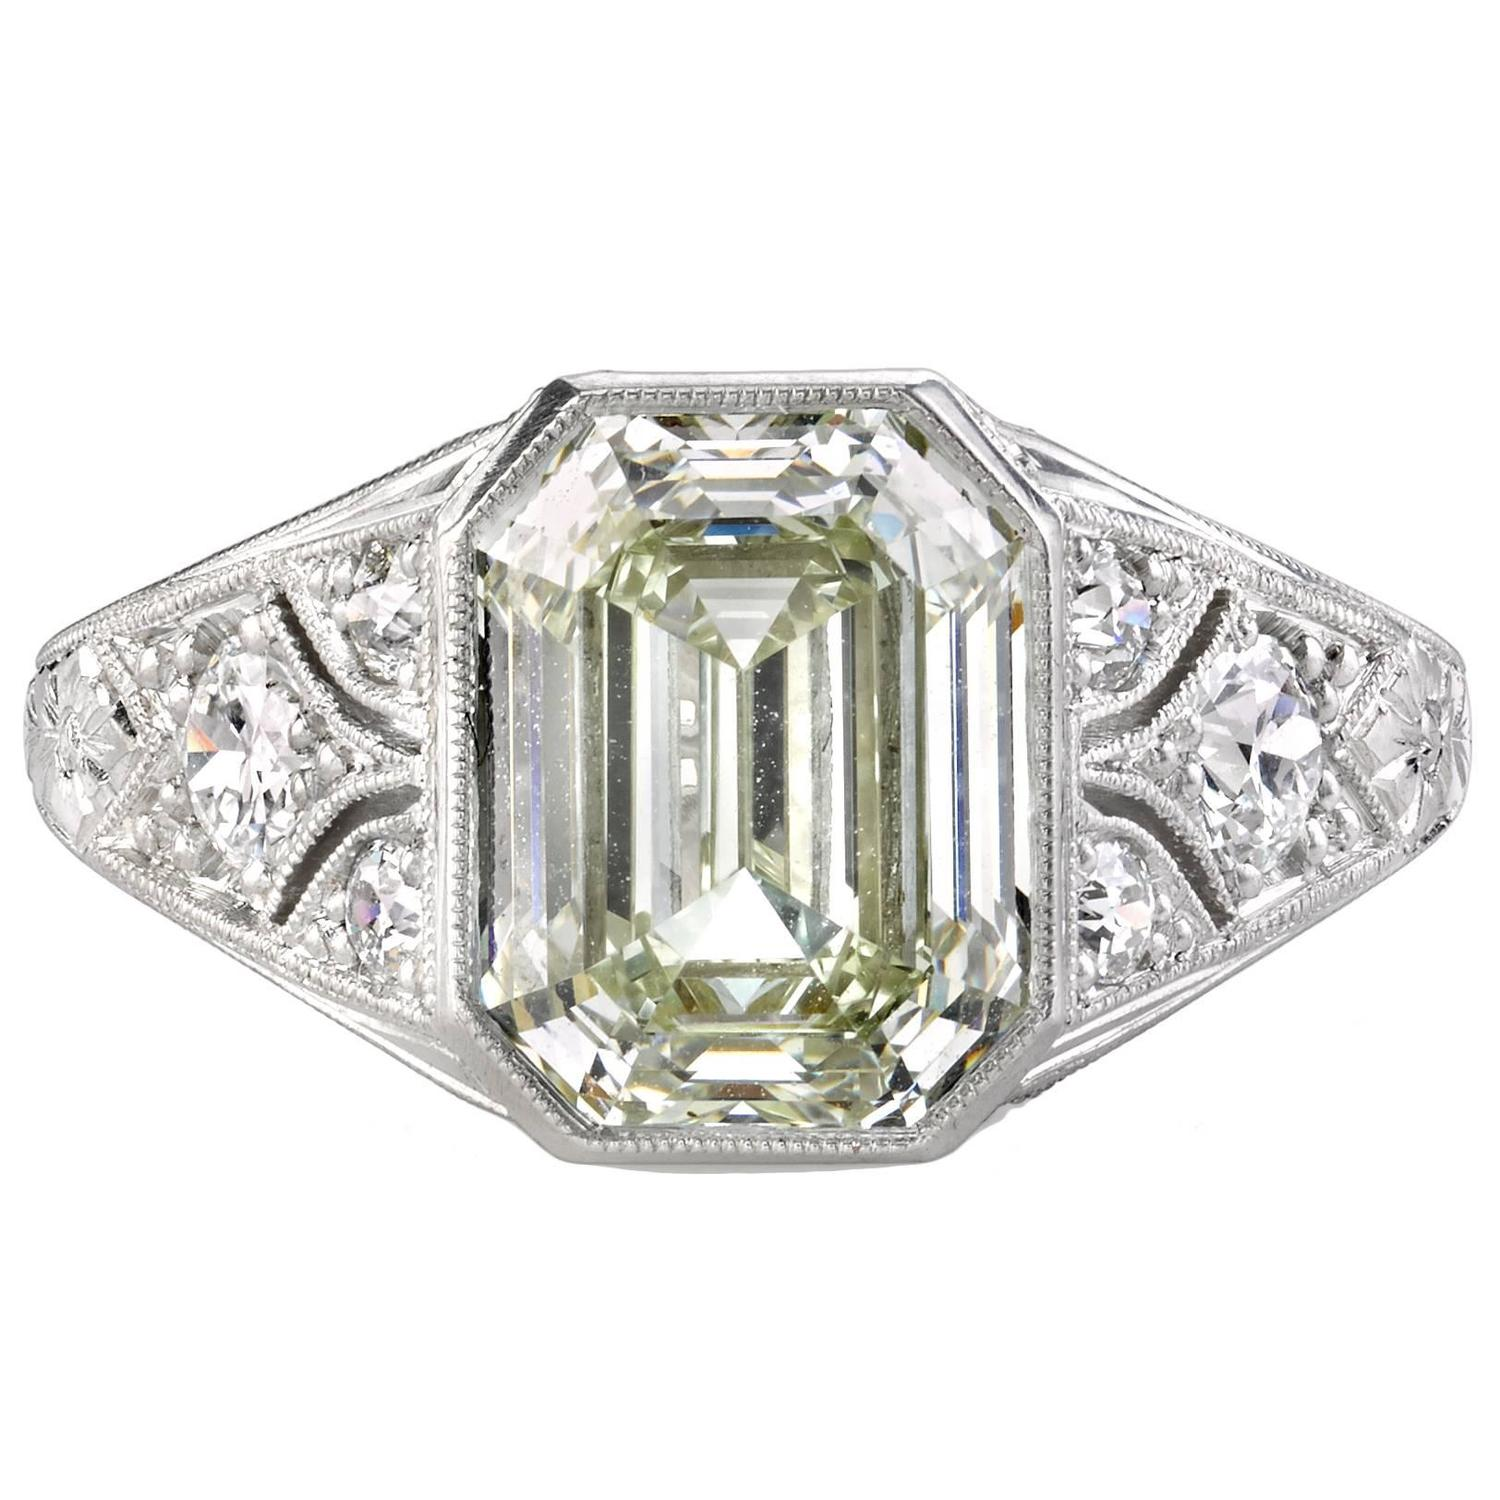 Best Of 3 Carat Emerald Cut Diamond